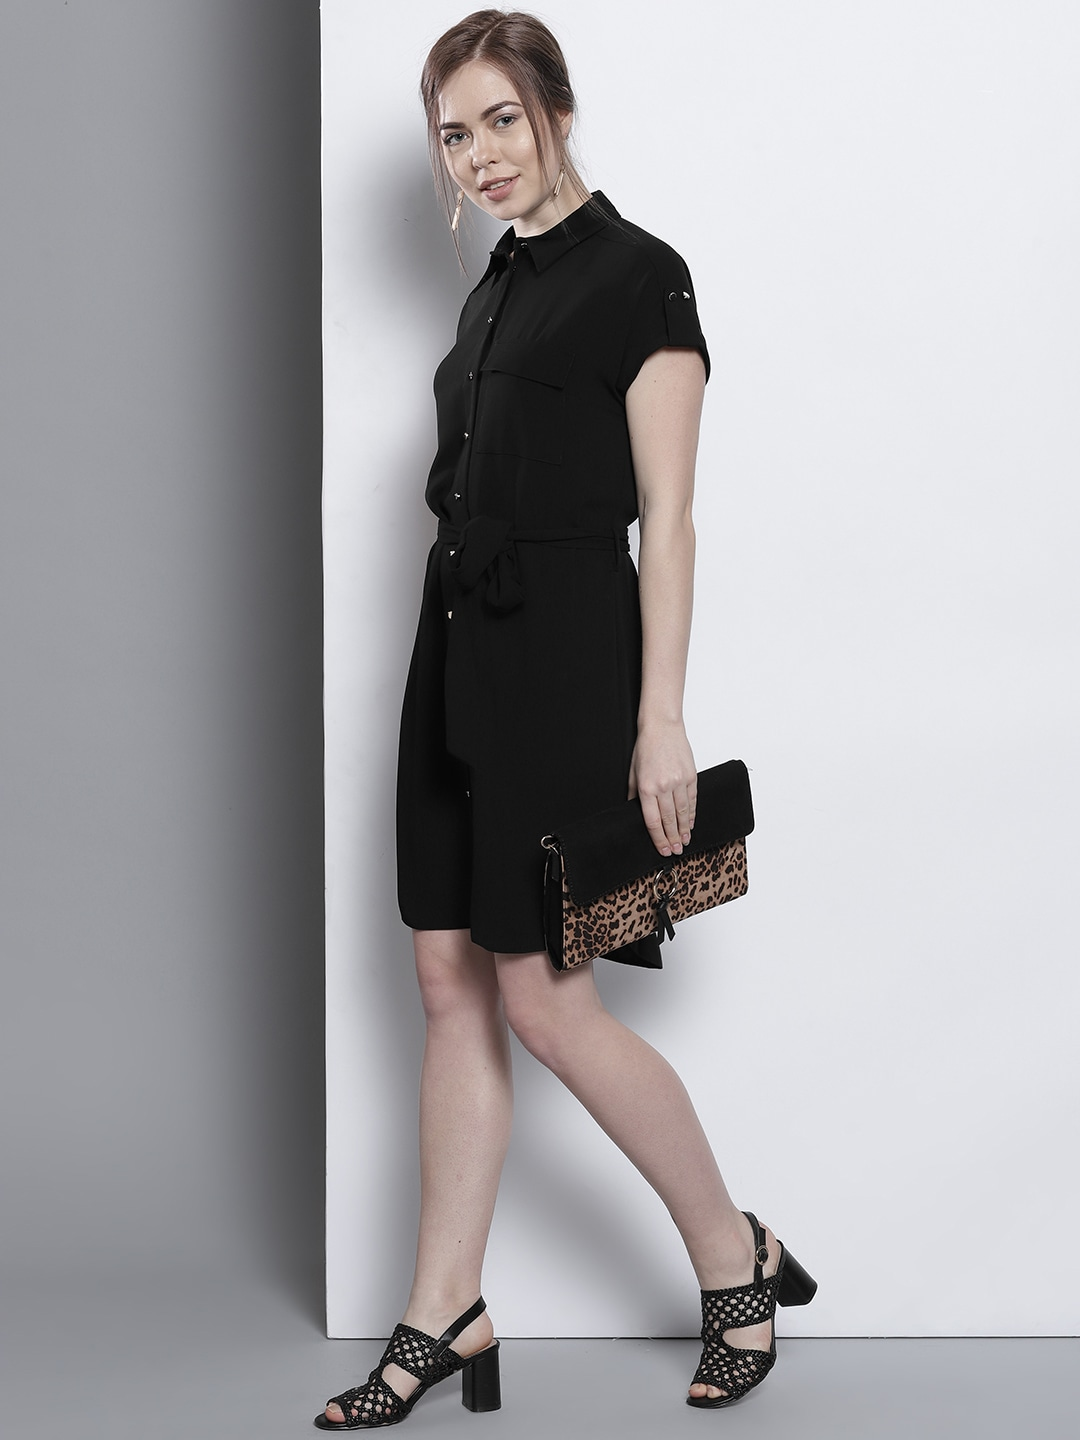 364da6e643 Black Dress - Buy Black Dresses For Women in India